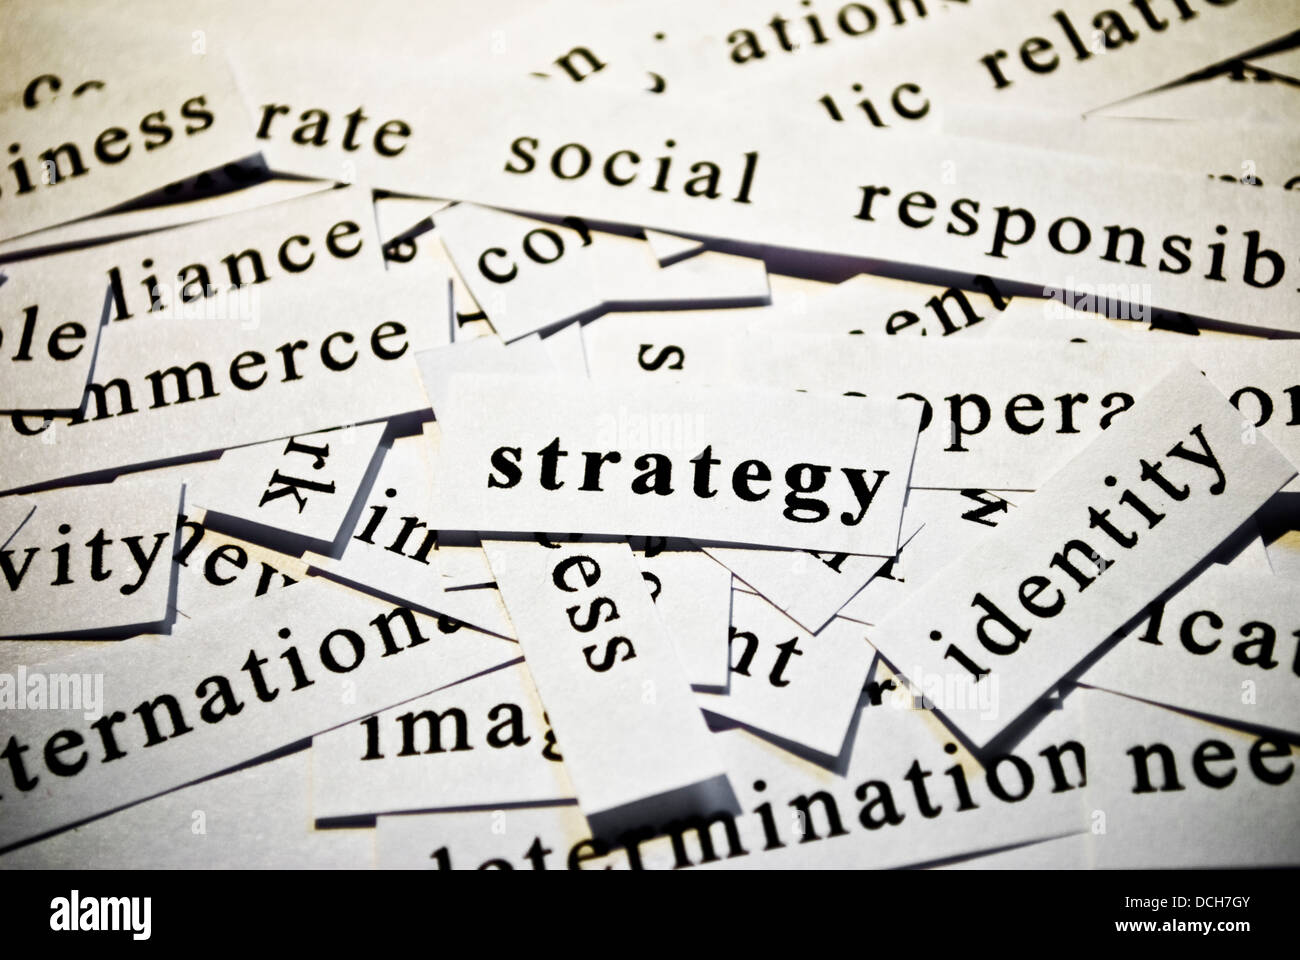 Strategy. Concept of cut-out words related with business activity - Stock Image